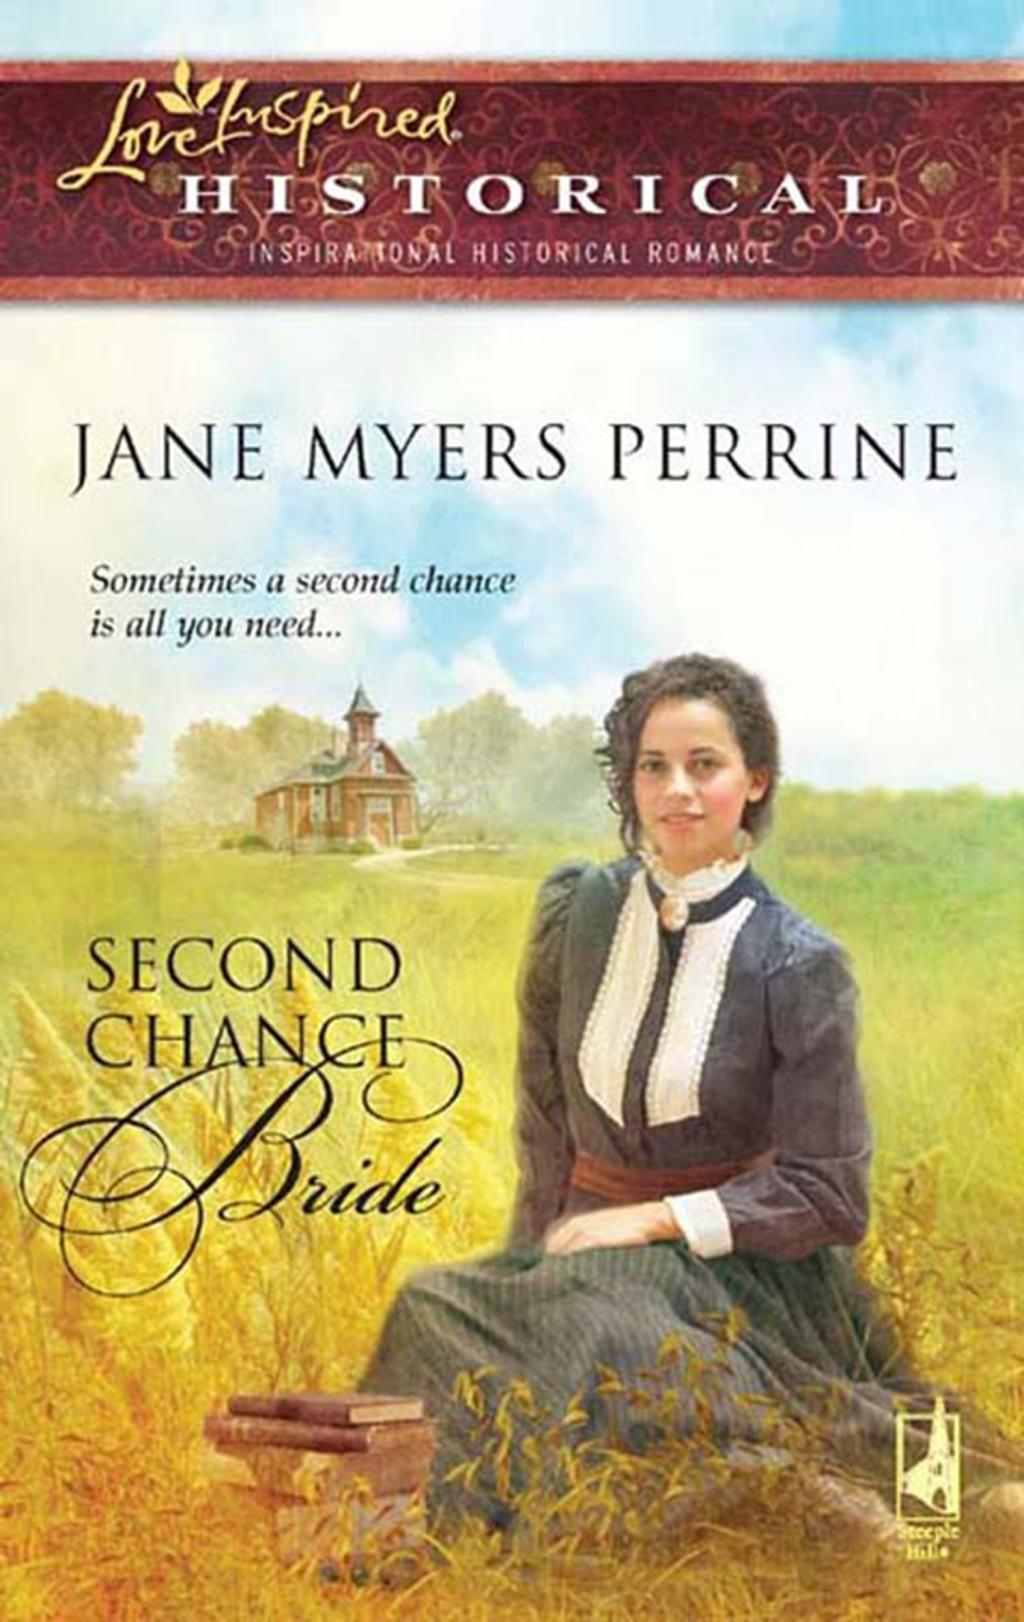 Second Chance Bride (Mills & Boon Historical)